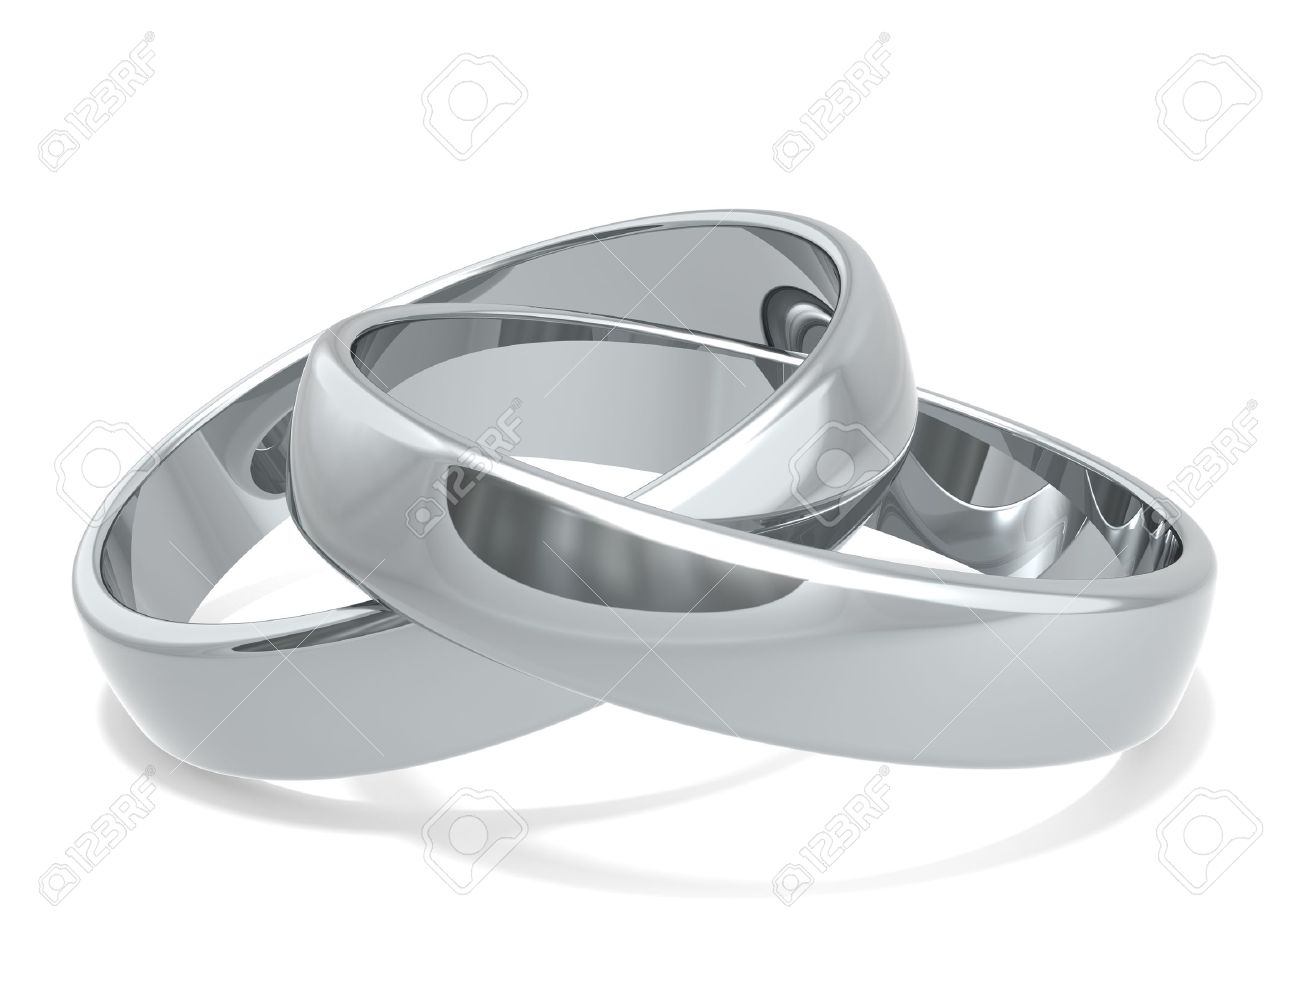 platinum wedding ring platinum wedding bands platinum wedding ring Wedding rings of Platinum 2